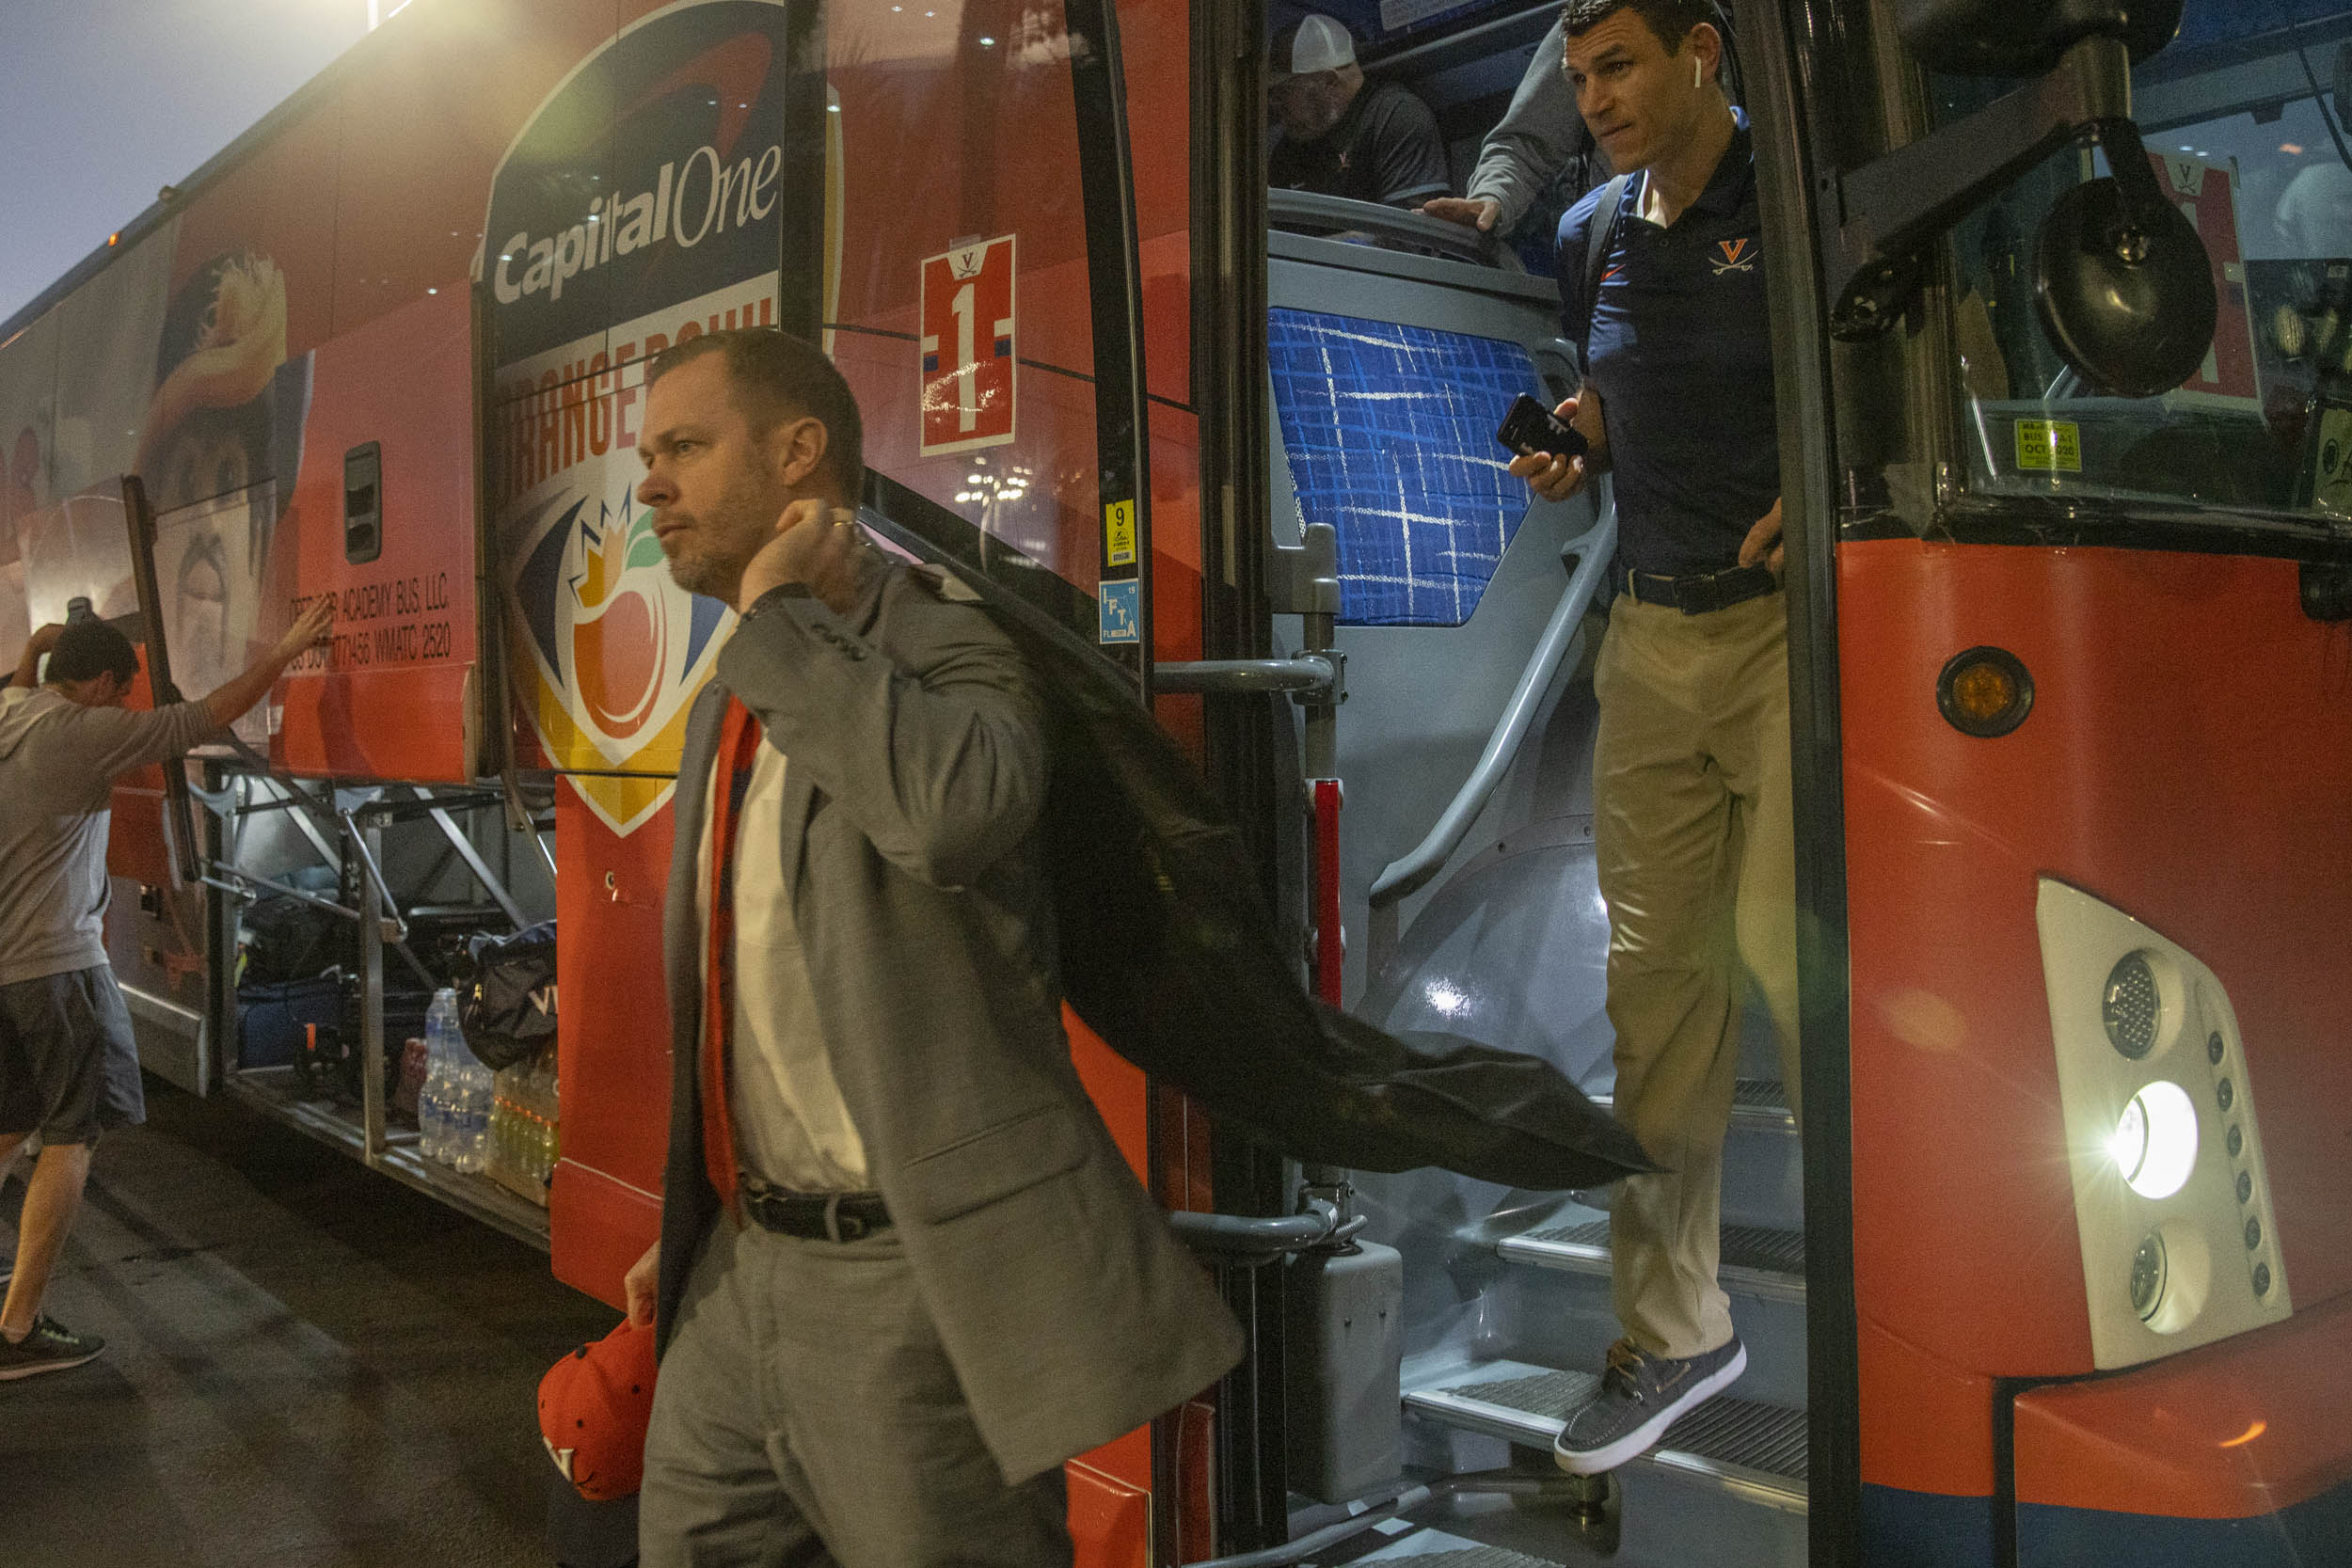 Mendenhall leads his team off the bus before the game.